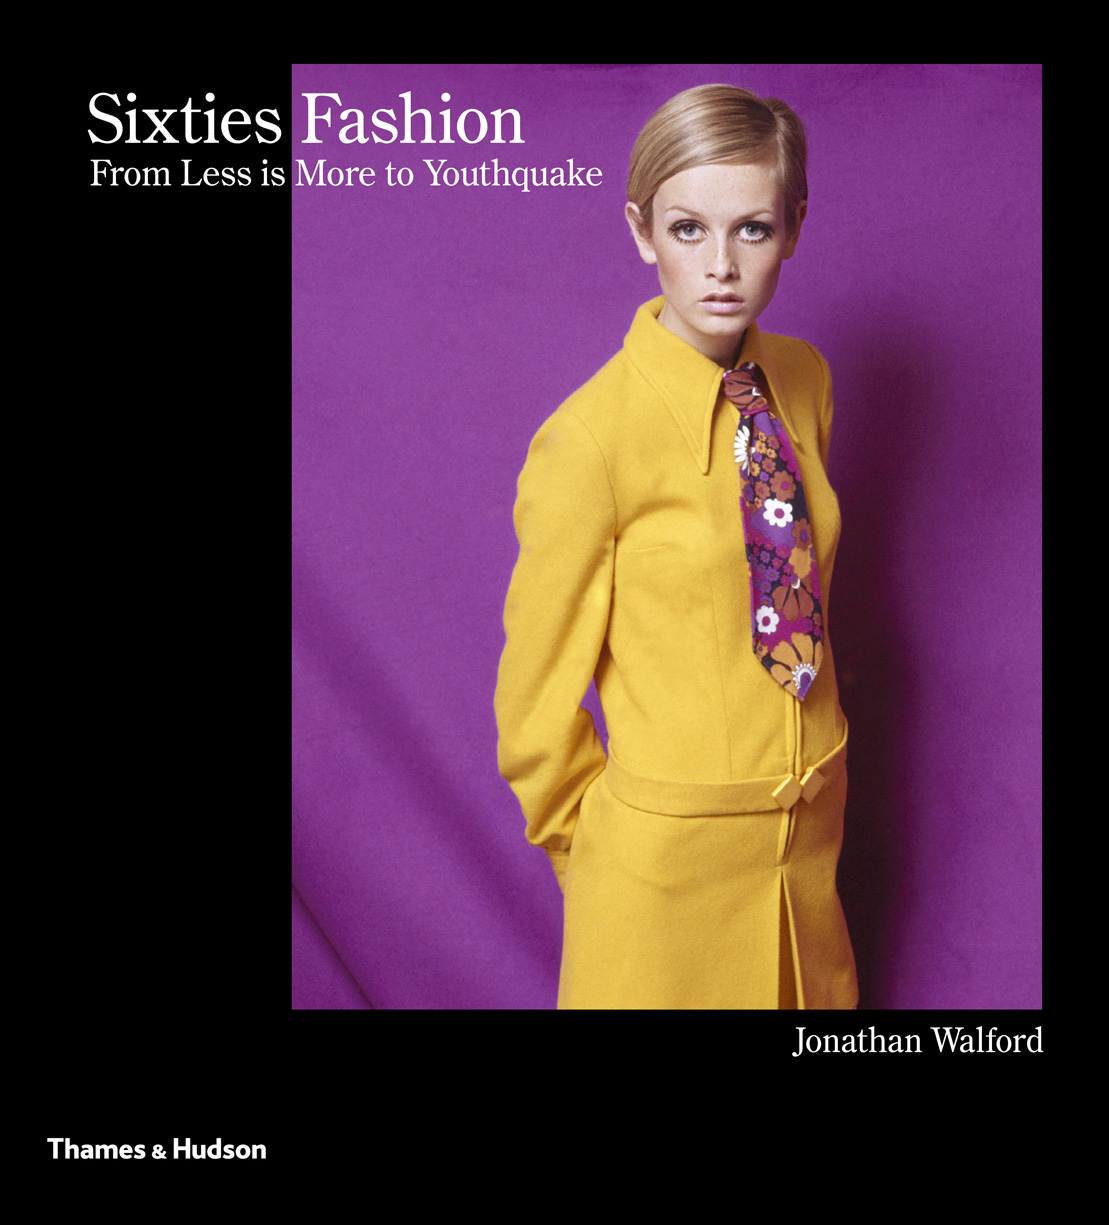 Sixties Fashion 9780500516935.jpg